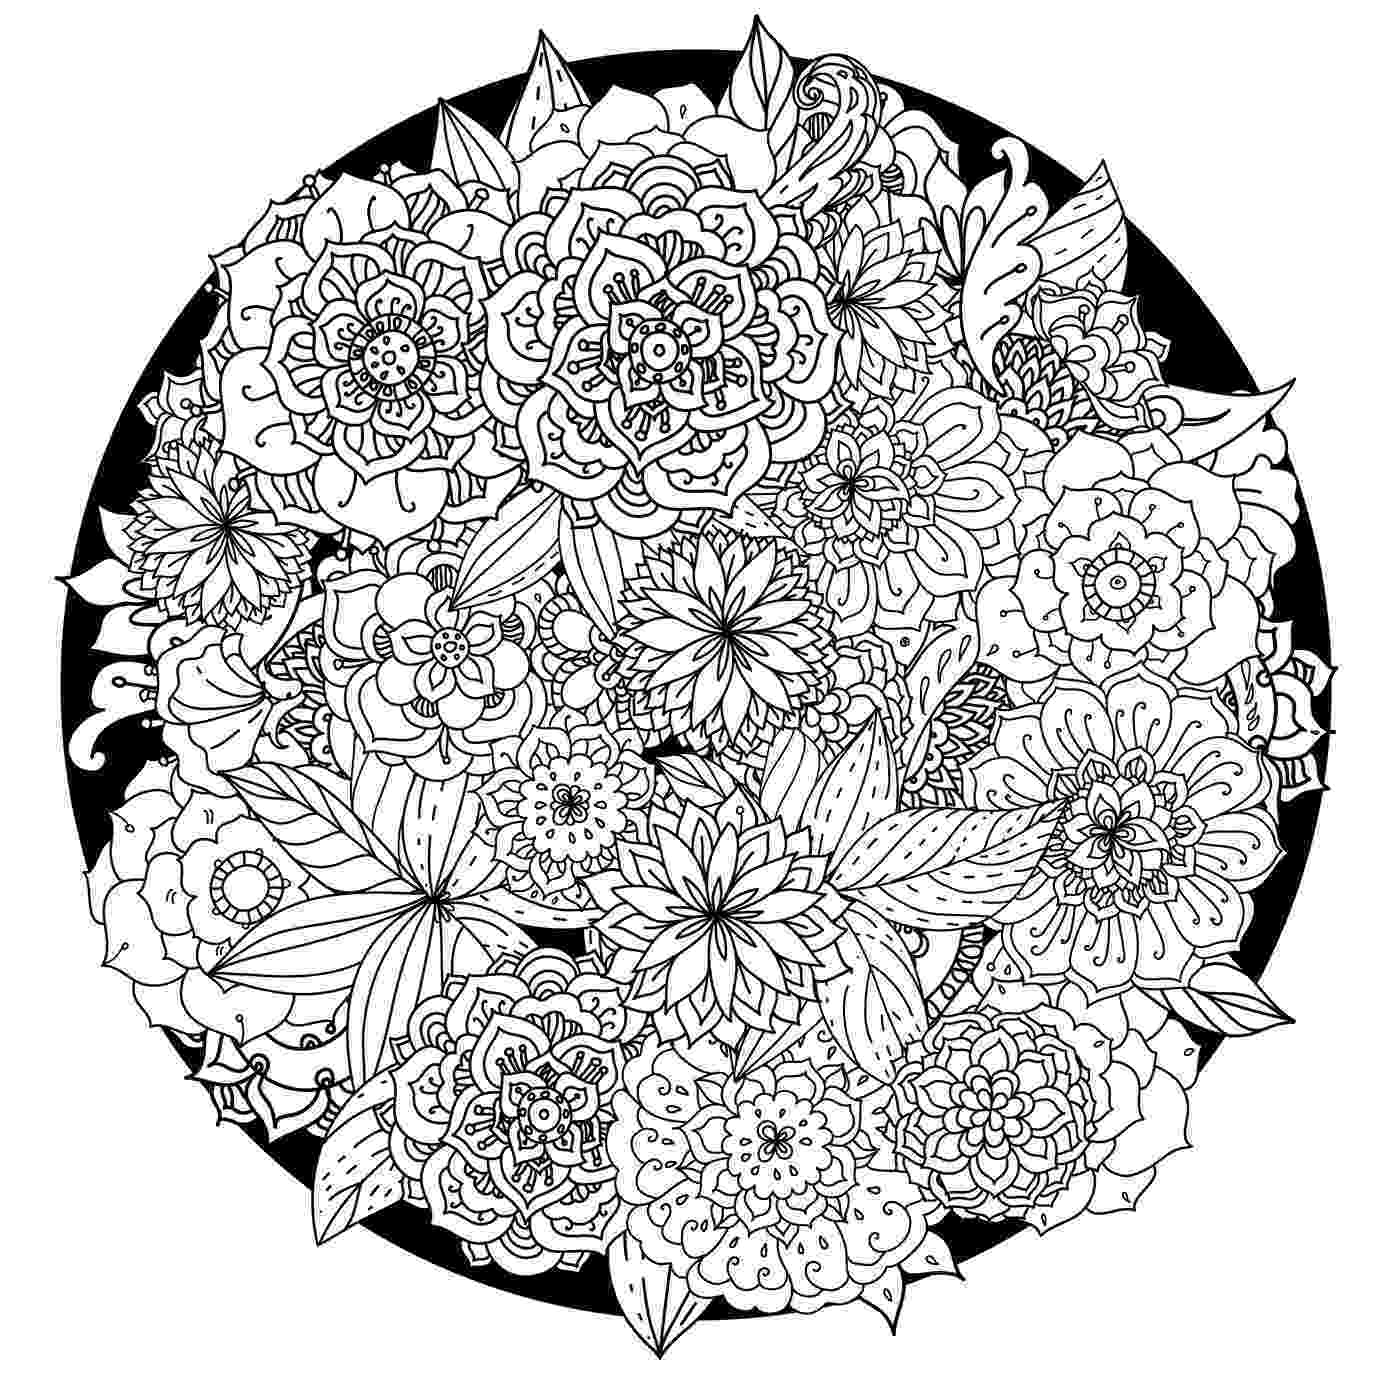 stress relieving coloring book stress relieving coloring pages printable at getcolorings relieving stress coloring book